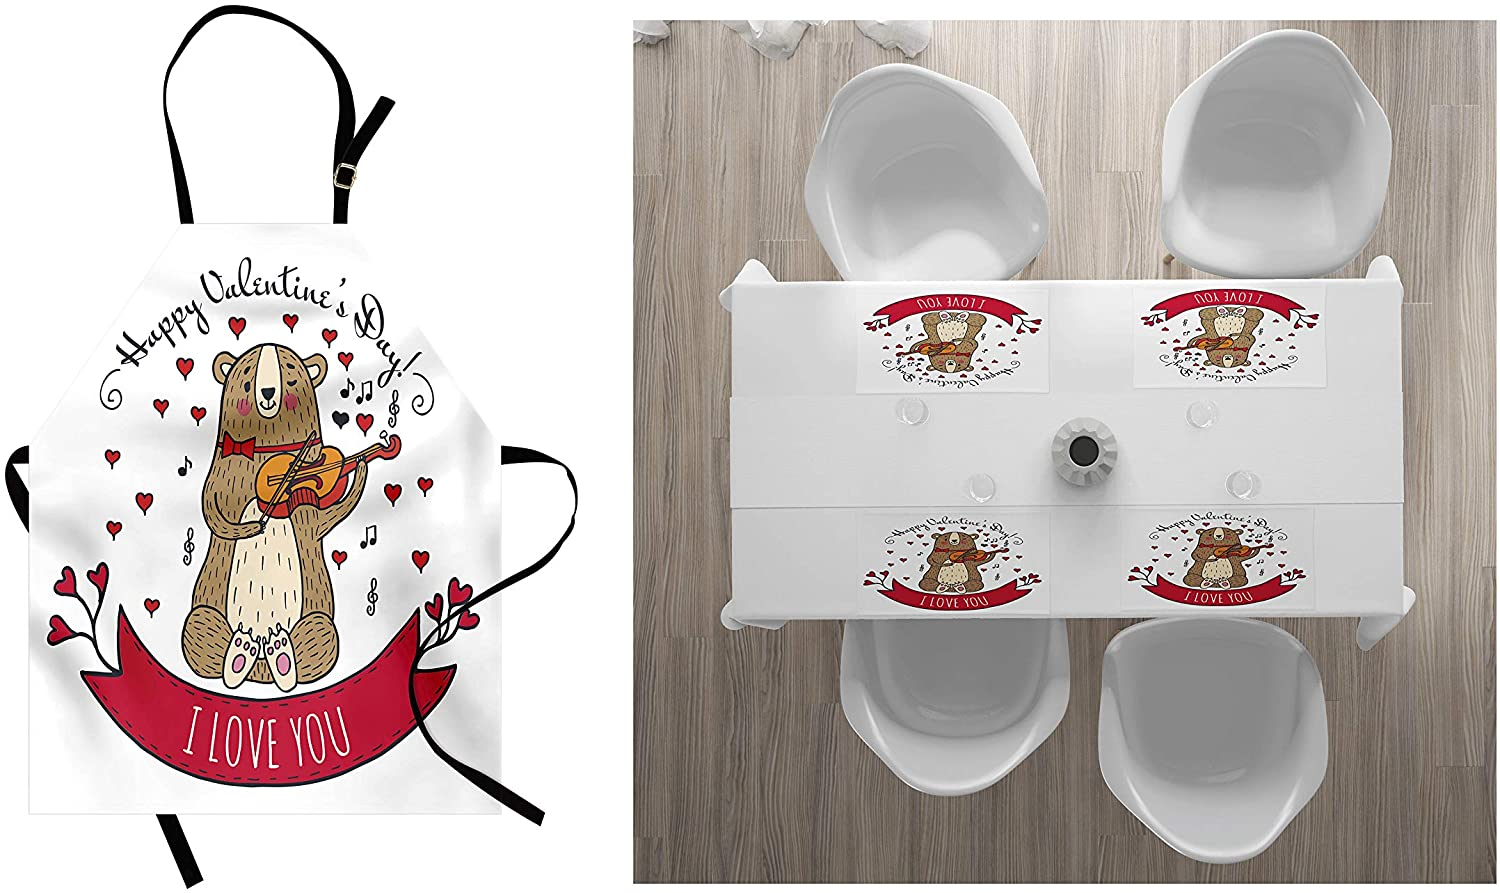 Ambesonne Valentines Day Apron & Placemat Bundle, Teddy Bear Violin Made Romantic Music Notes Heart I Love You1 Unisex Kitchen Bib and 4 Washable Fabric Placemats, Red Brown